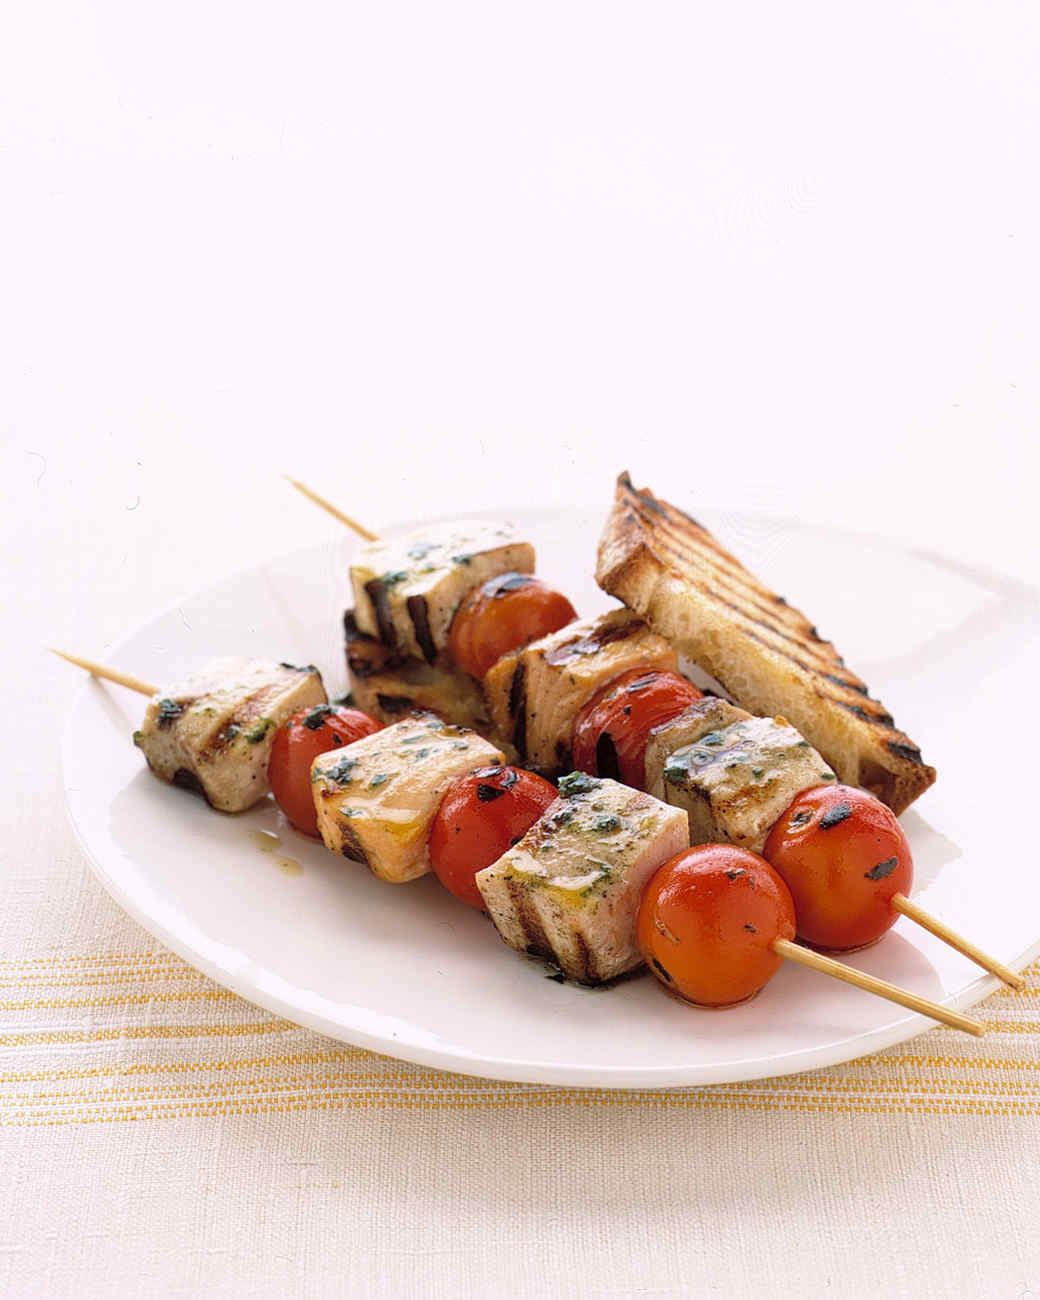 Grilled Fish Kabobs with Cherry Tomatoes